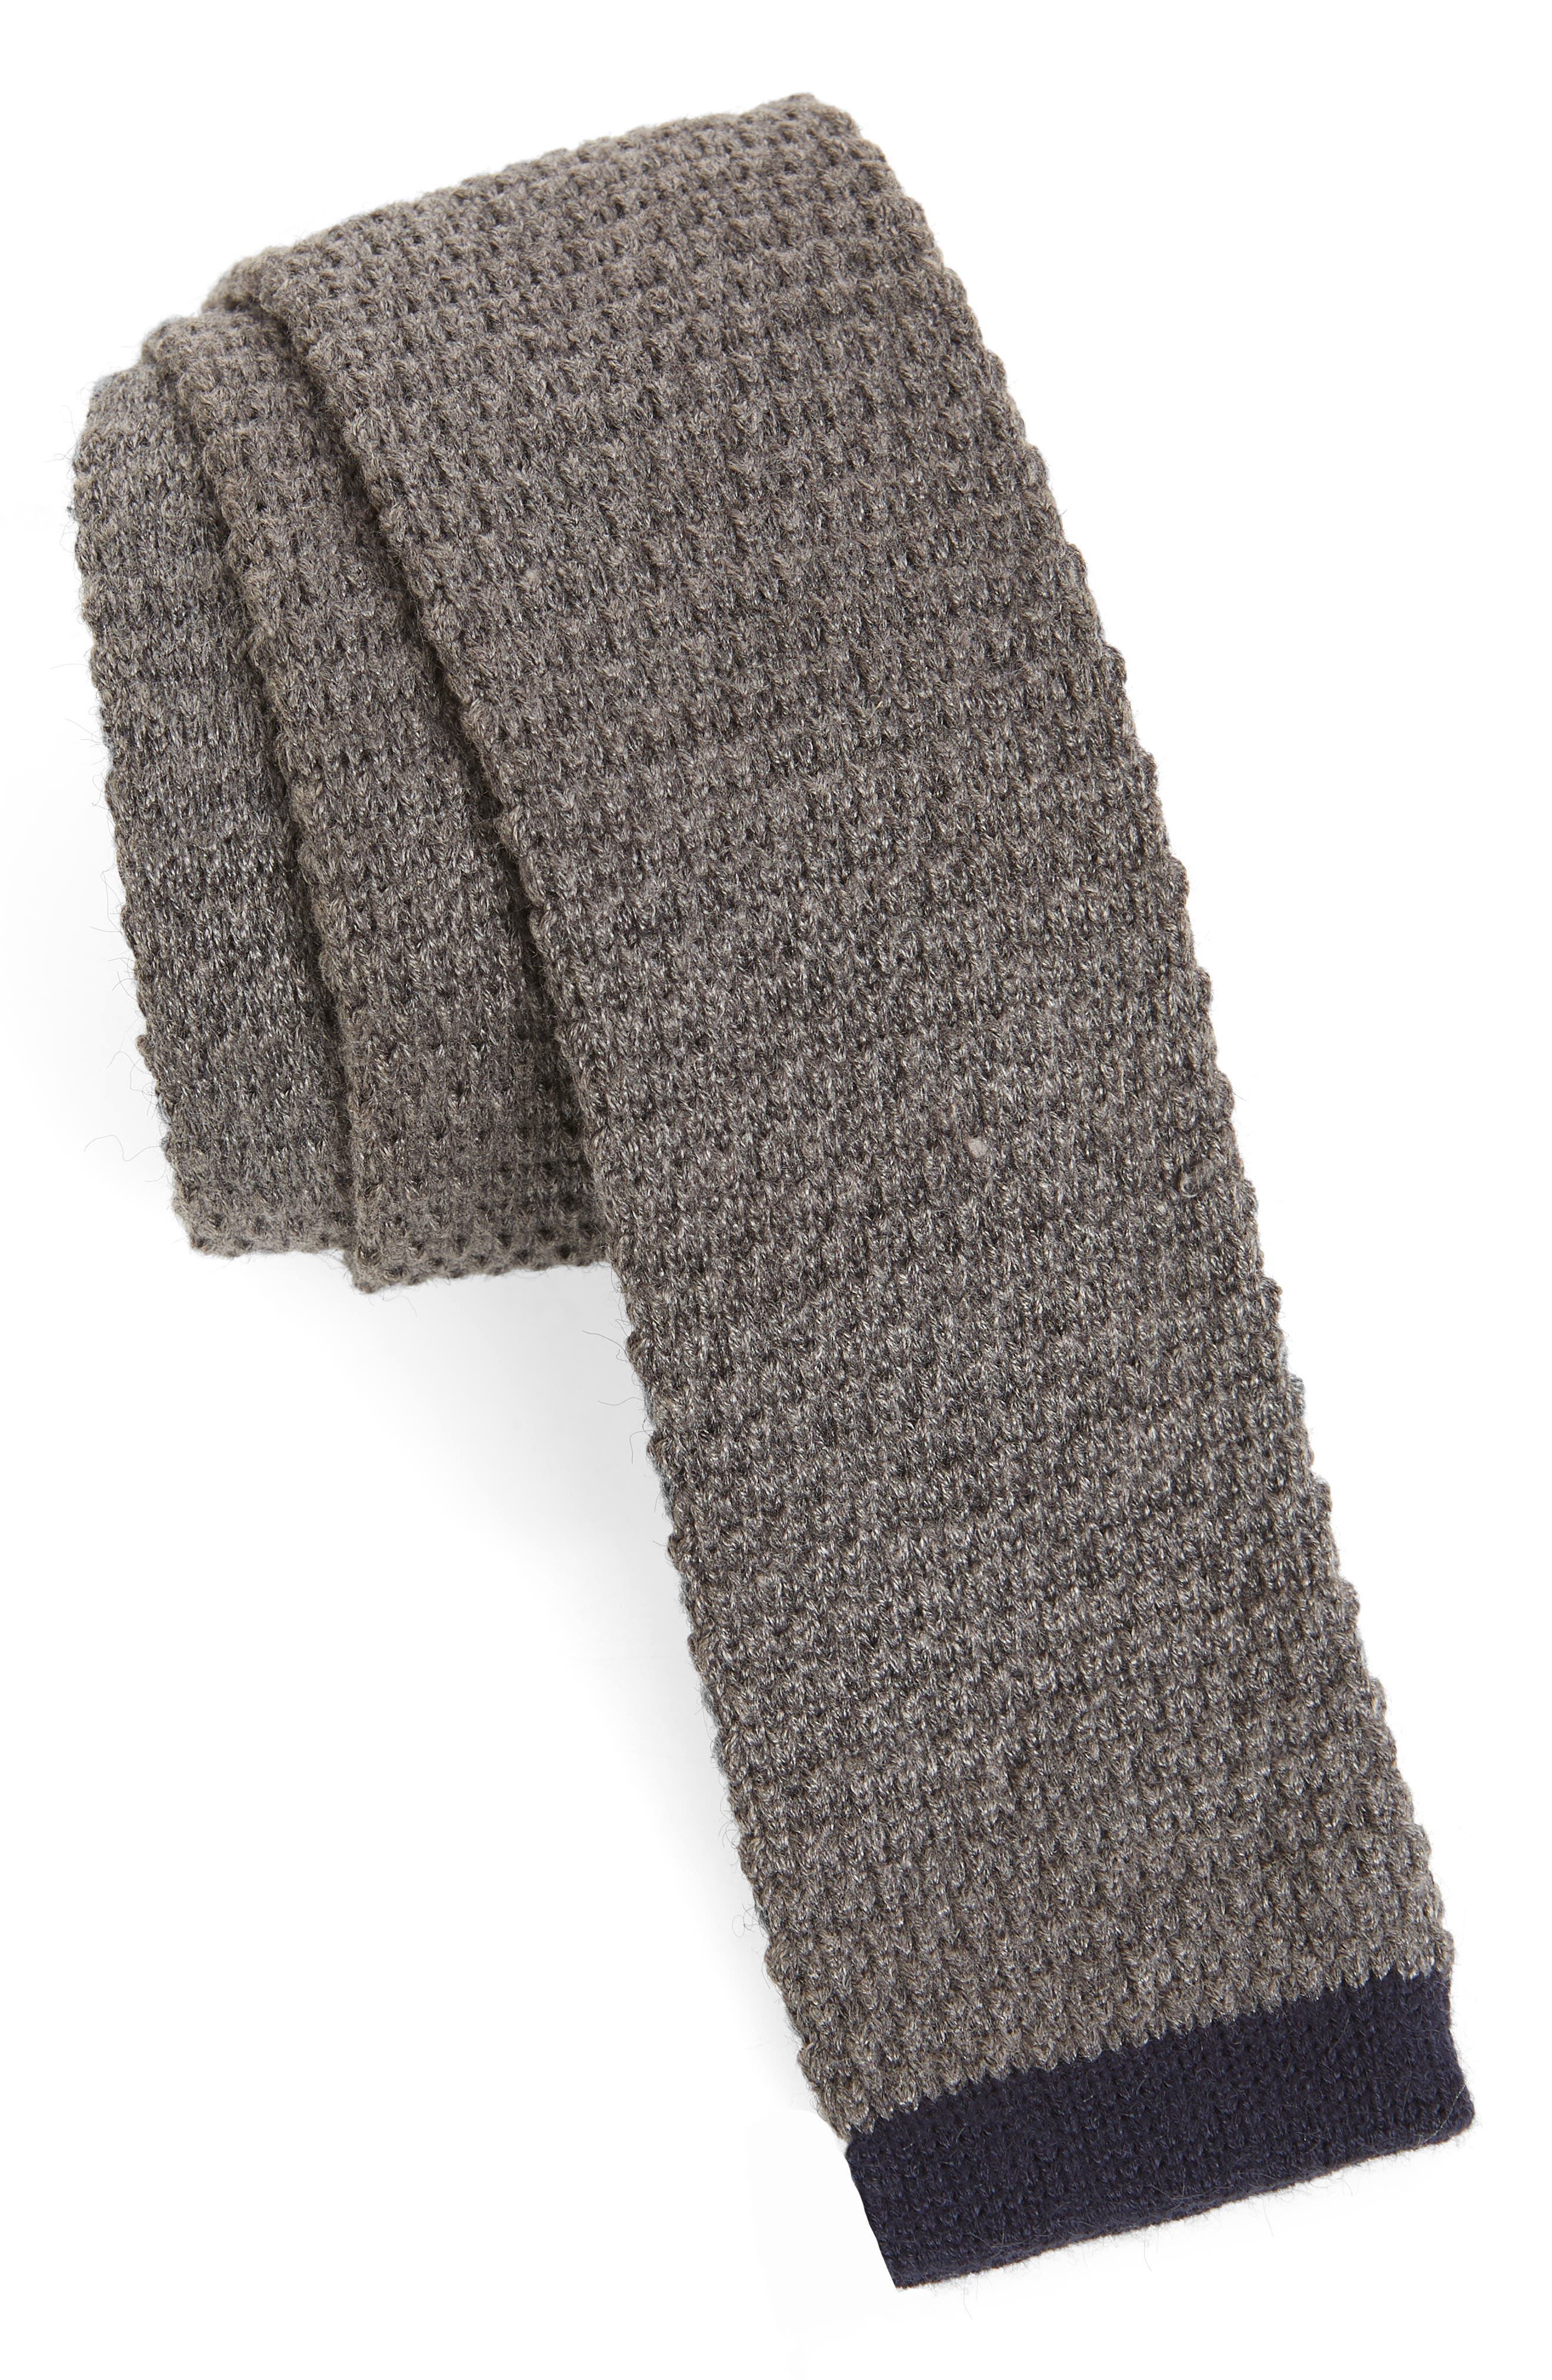 Belvin Knit Skinny Tie,                         Main,                         color, CHARCOAL